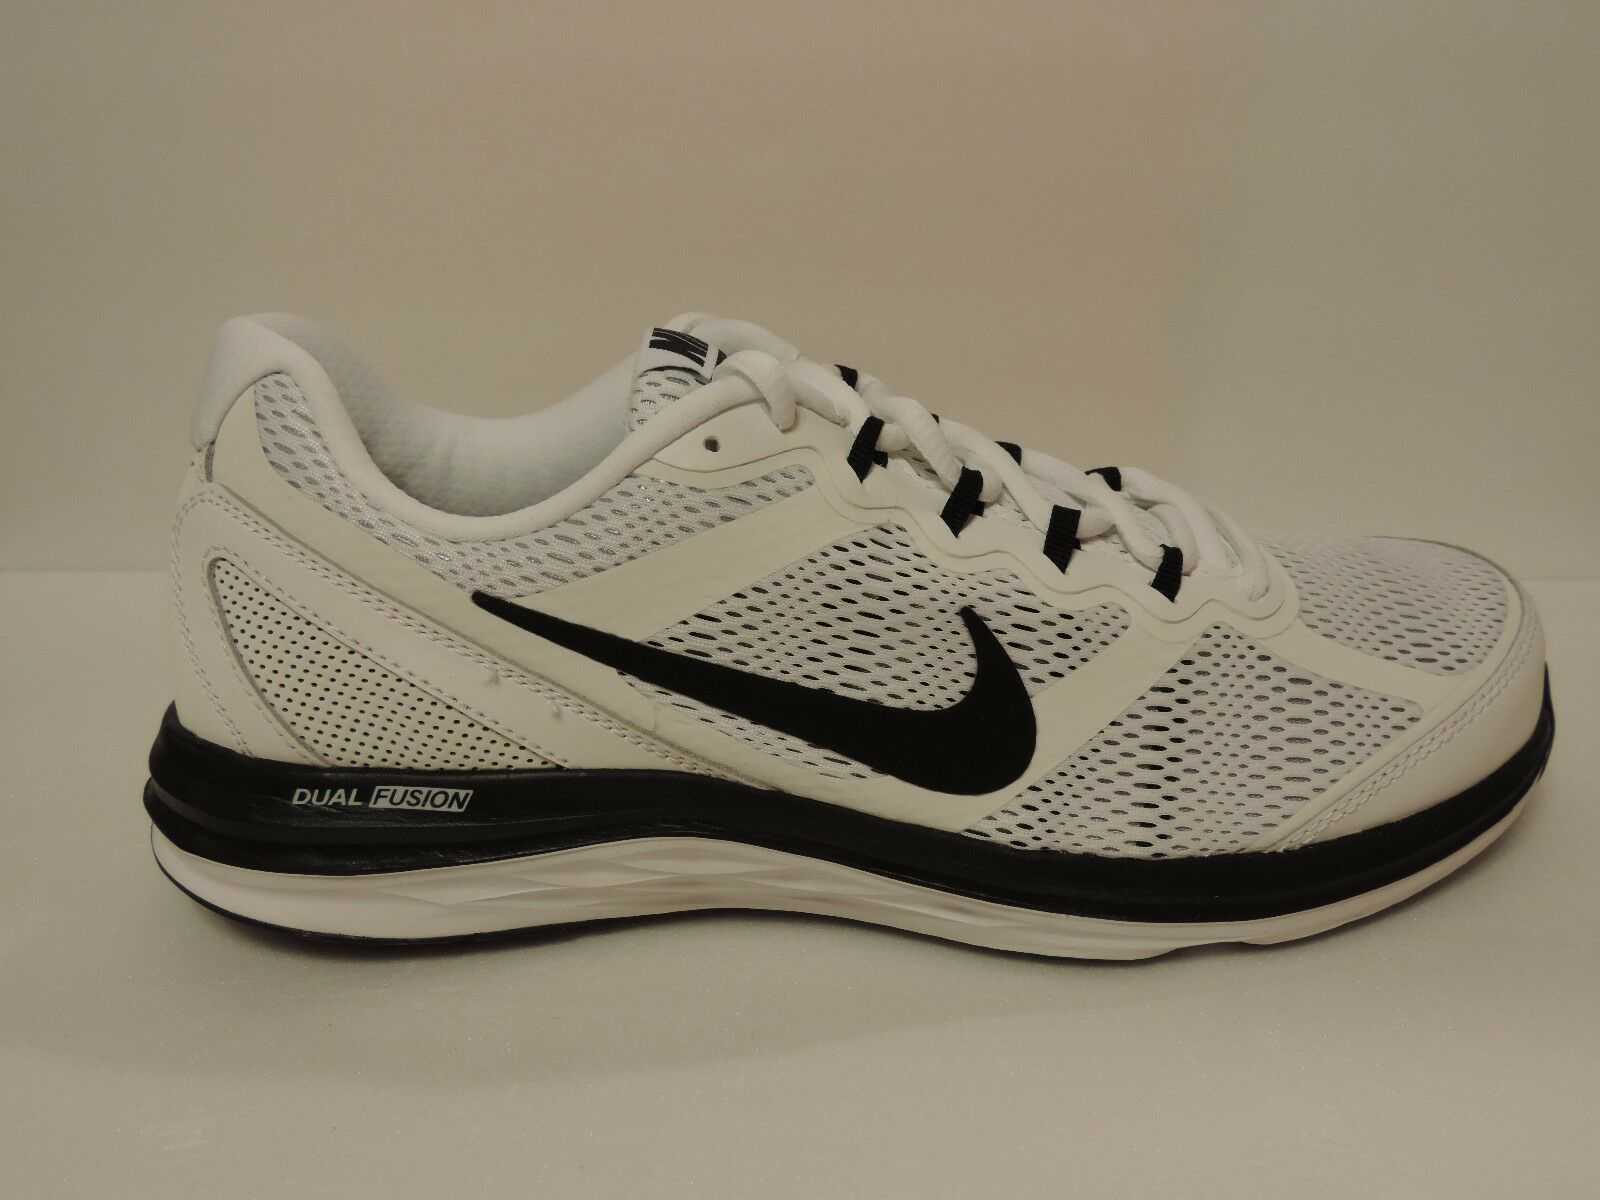 New Nike Dual Fusion Run 3 Zonal sandwich mesh upper Running white black shoes